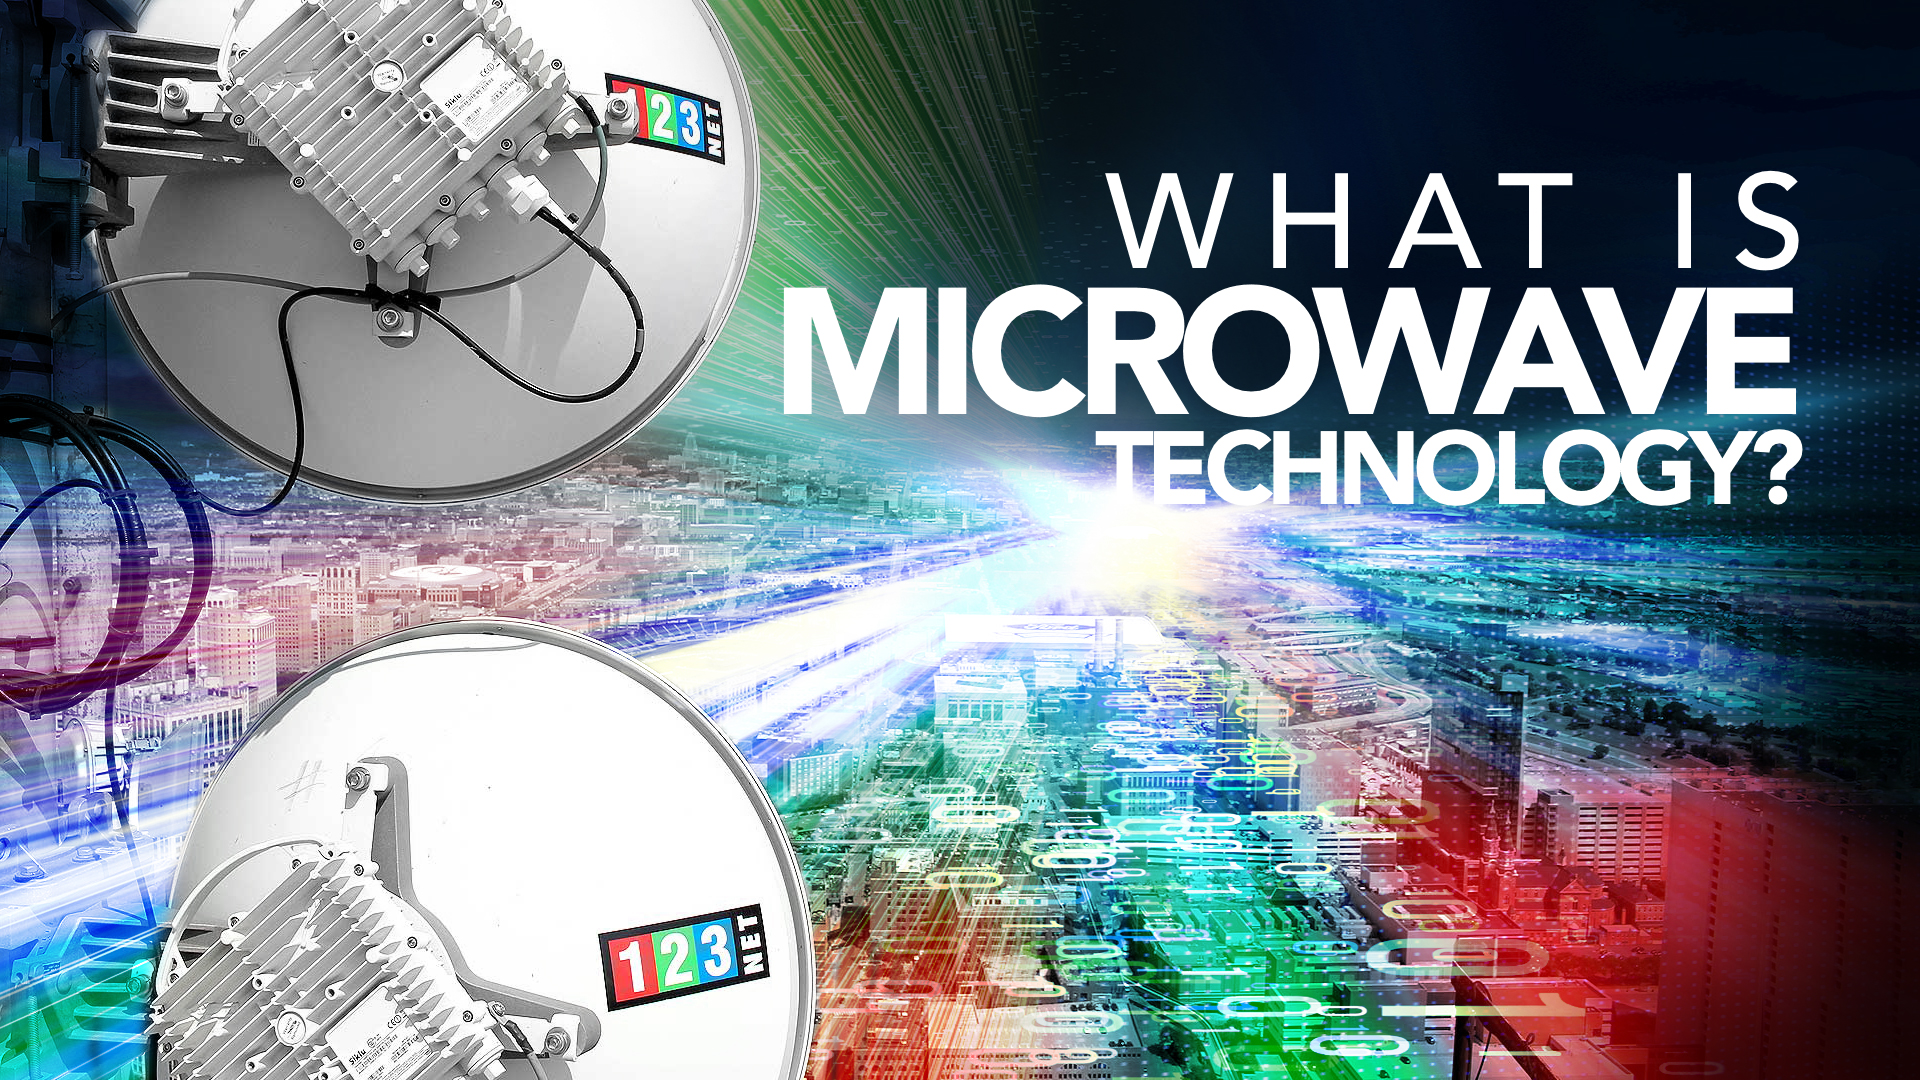 What is Microwave Technology?